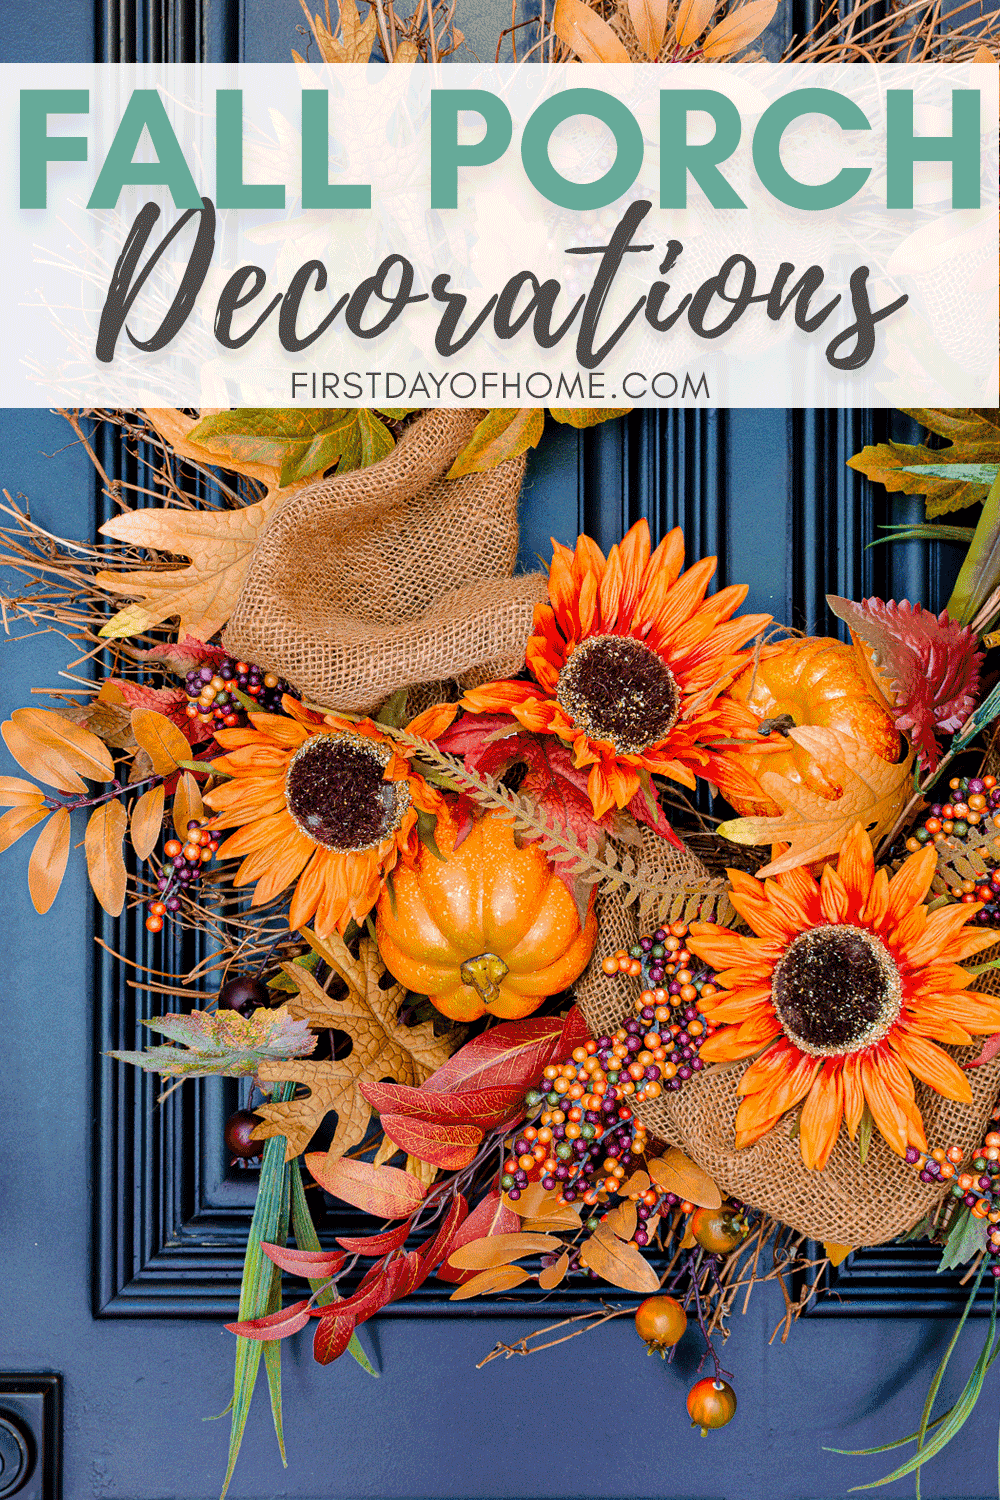 Fall front door wreath with sunflowers, pumpkins, leaves and burlap ribbon